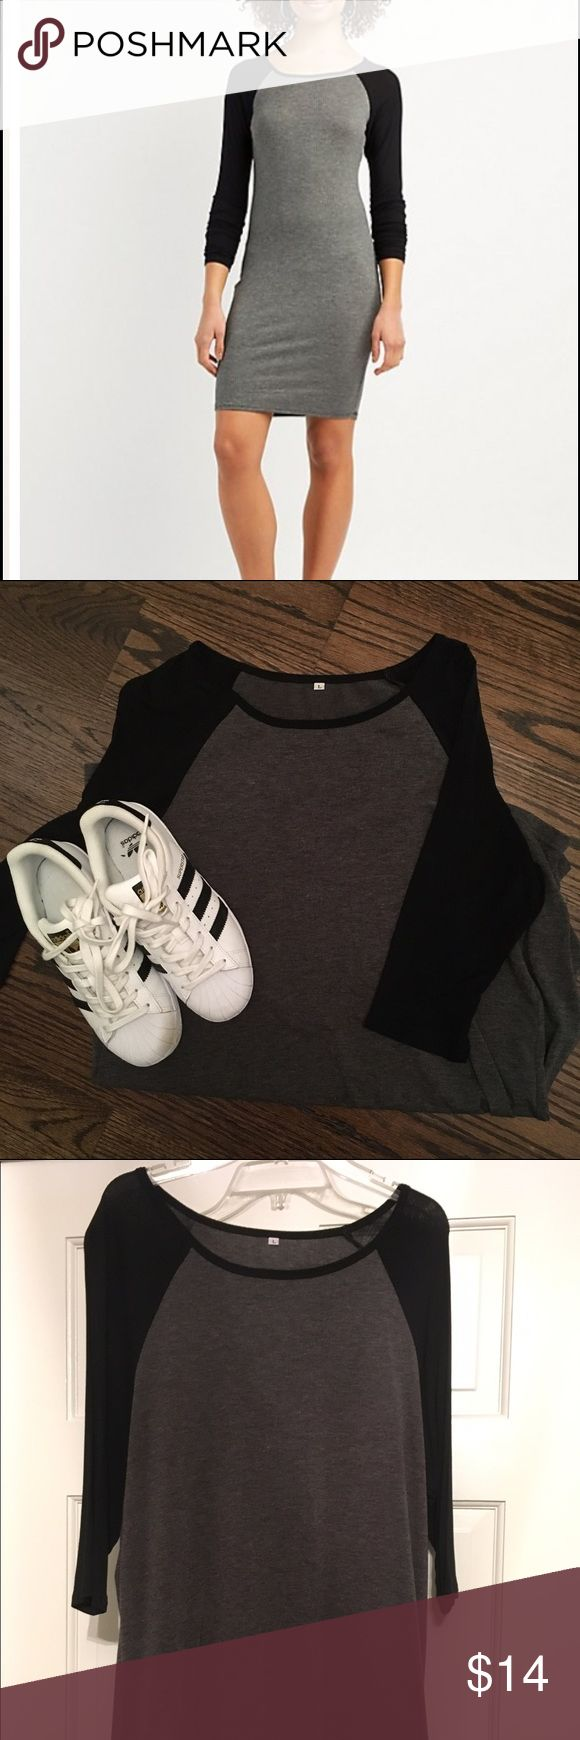 Adorable t-shirt dress Adorable grey t-shirt dress with black sleeves. Pair with chunky loafers or sneakers. Dresses